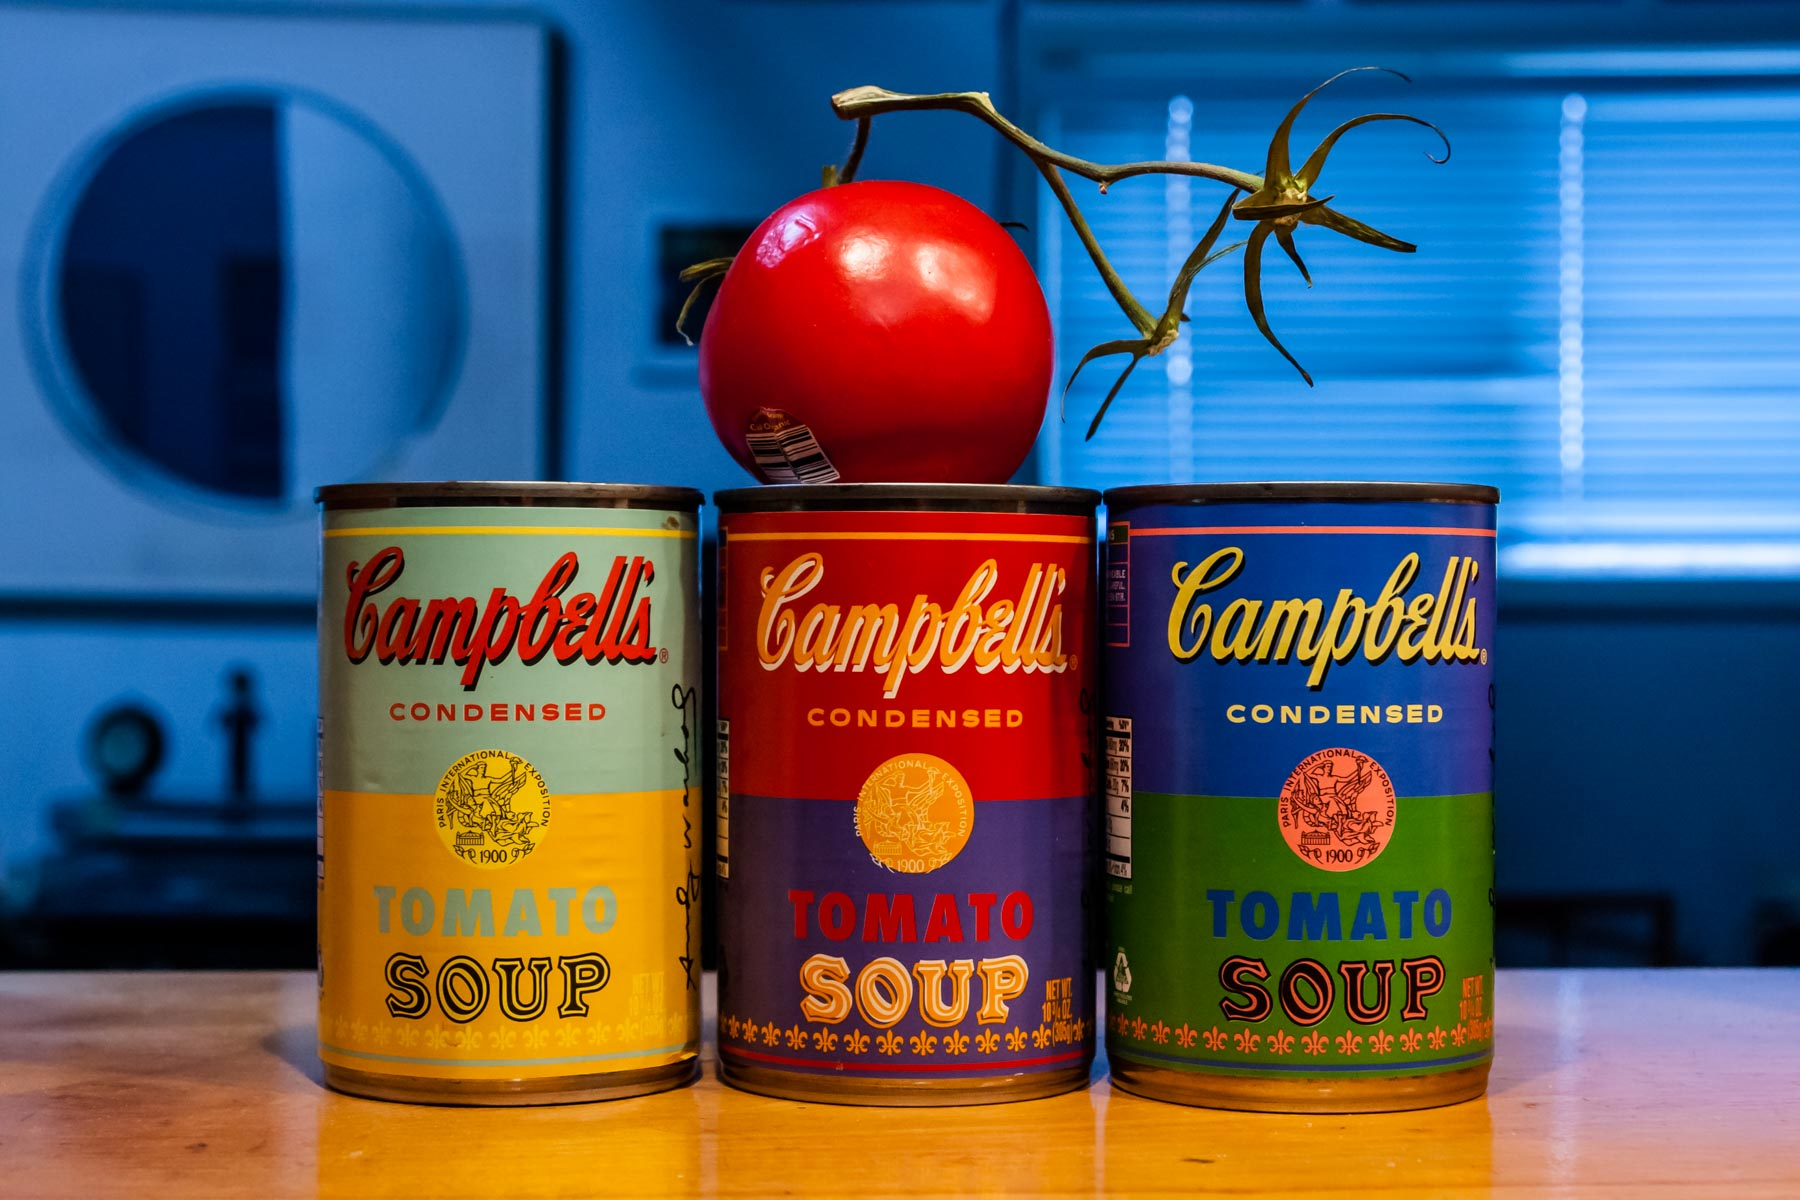 cambell_soup_tomato_201512-1